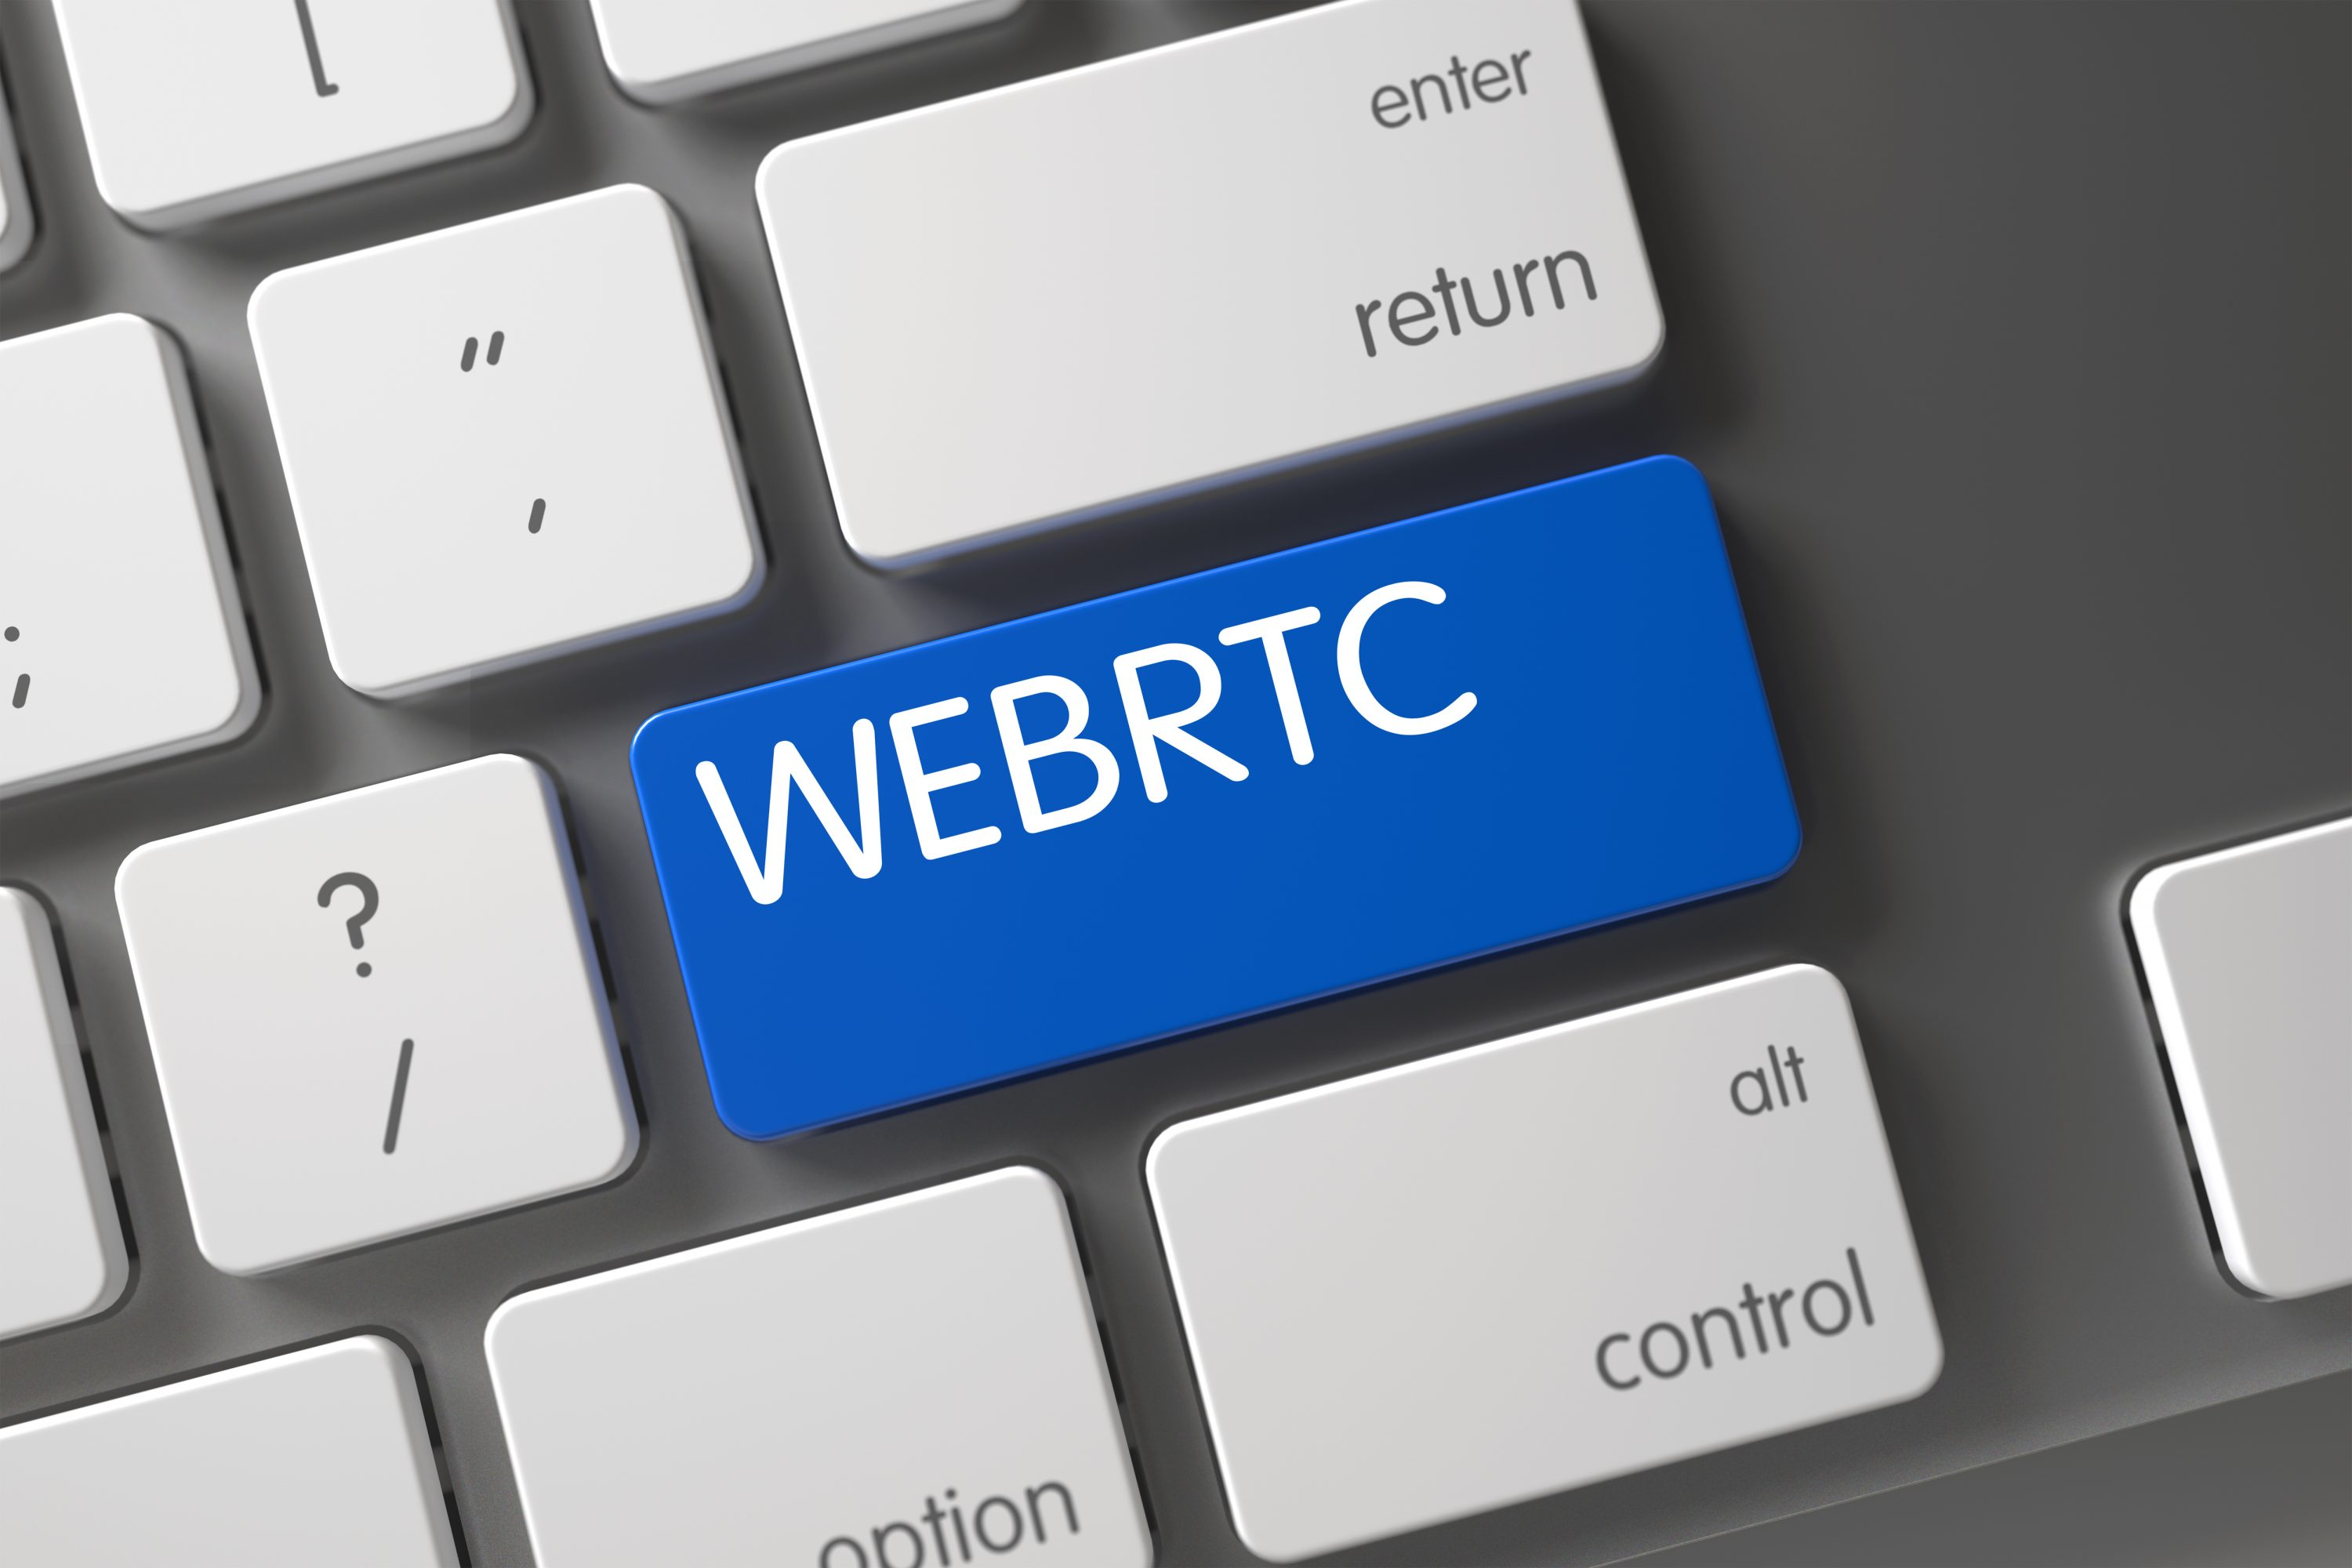 WebRTC on mobile devices for Genesys